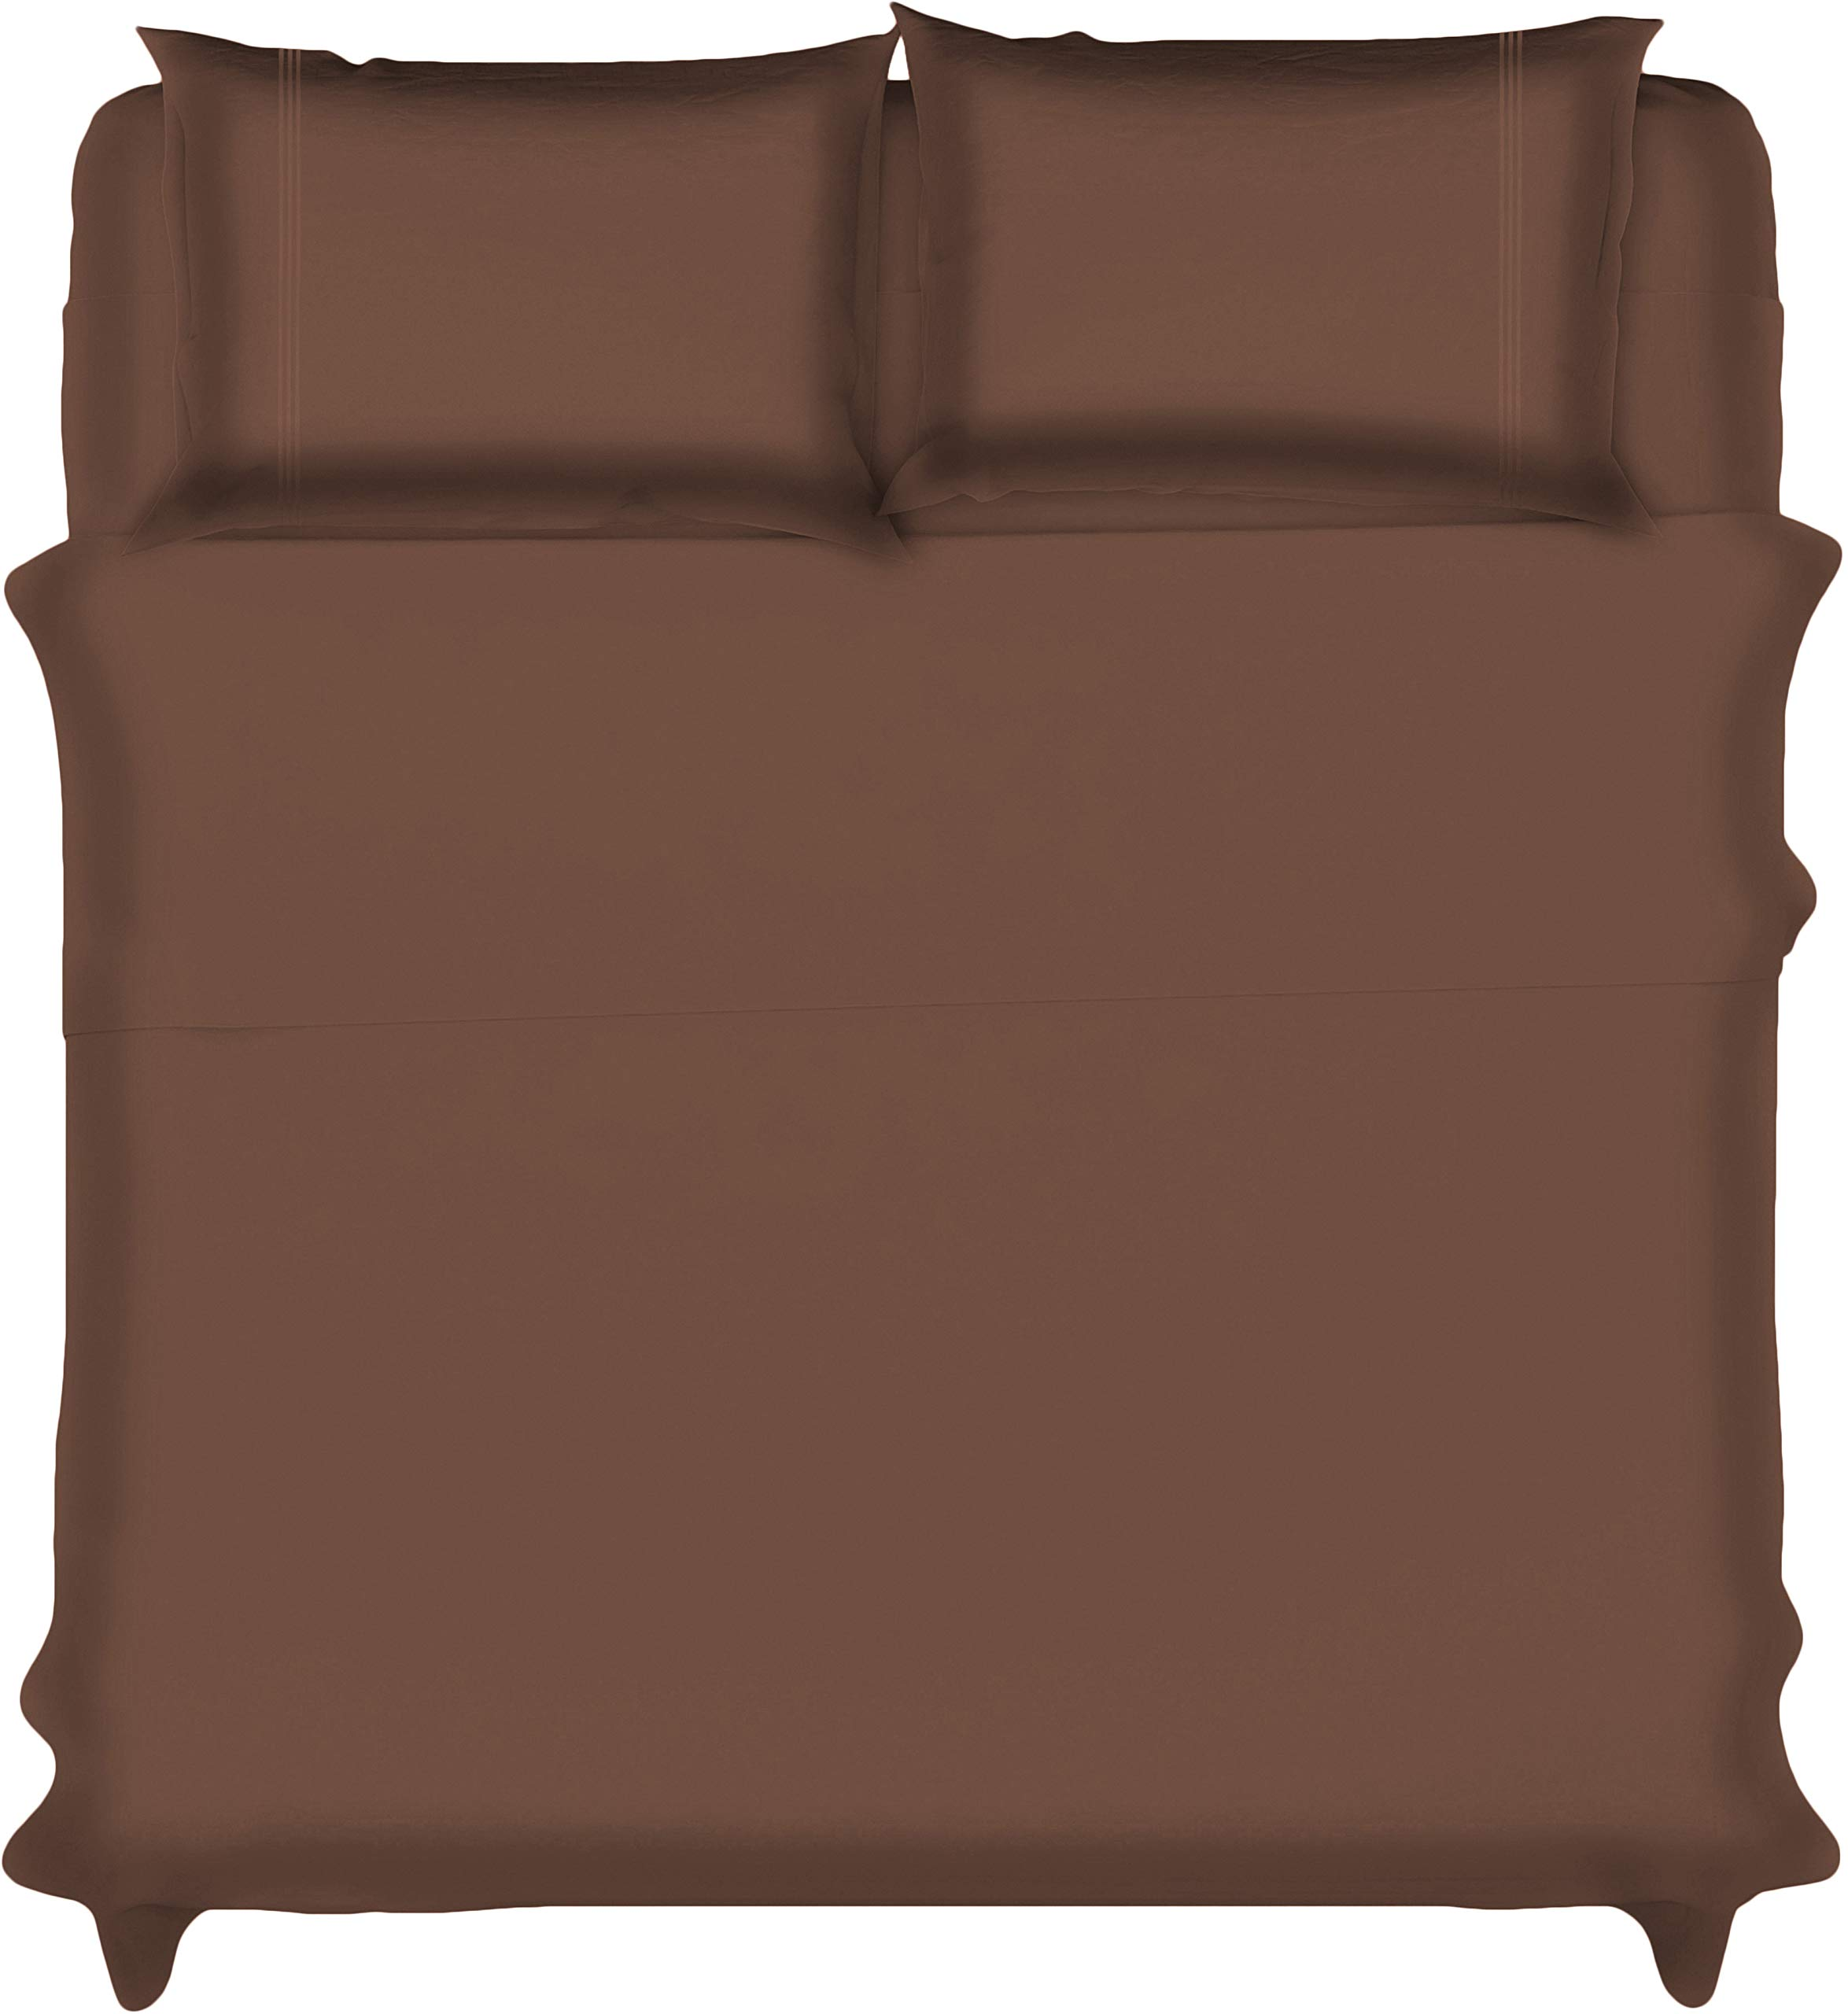 Lux Decor Collection Bed Sheet Set - Brushed Microfiber 1800 Bedding - Wrinkle, Stain and Fade Resistant - Hypoallergenic - 4 Piece (King,Embroidery Chocolate)